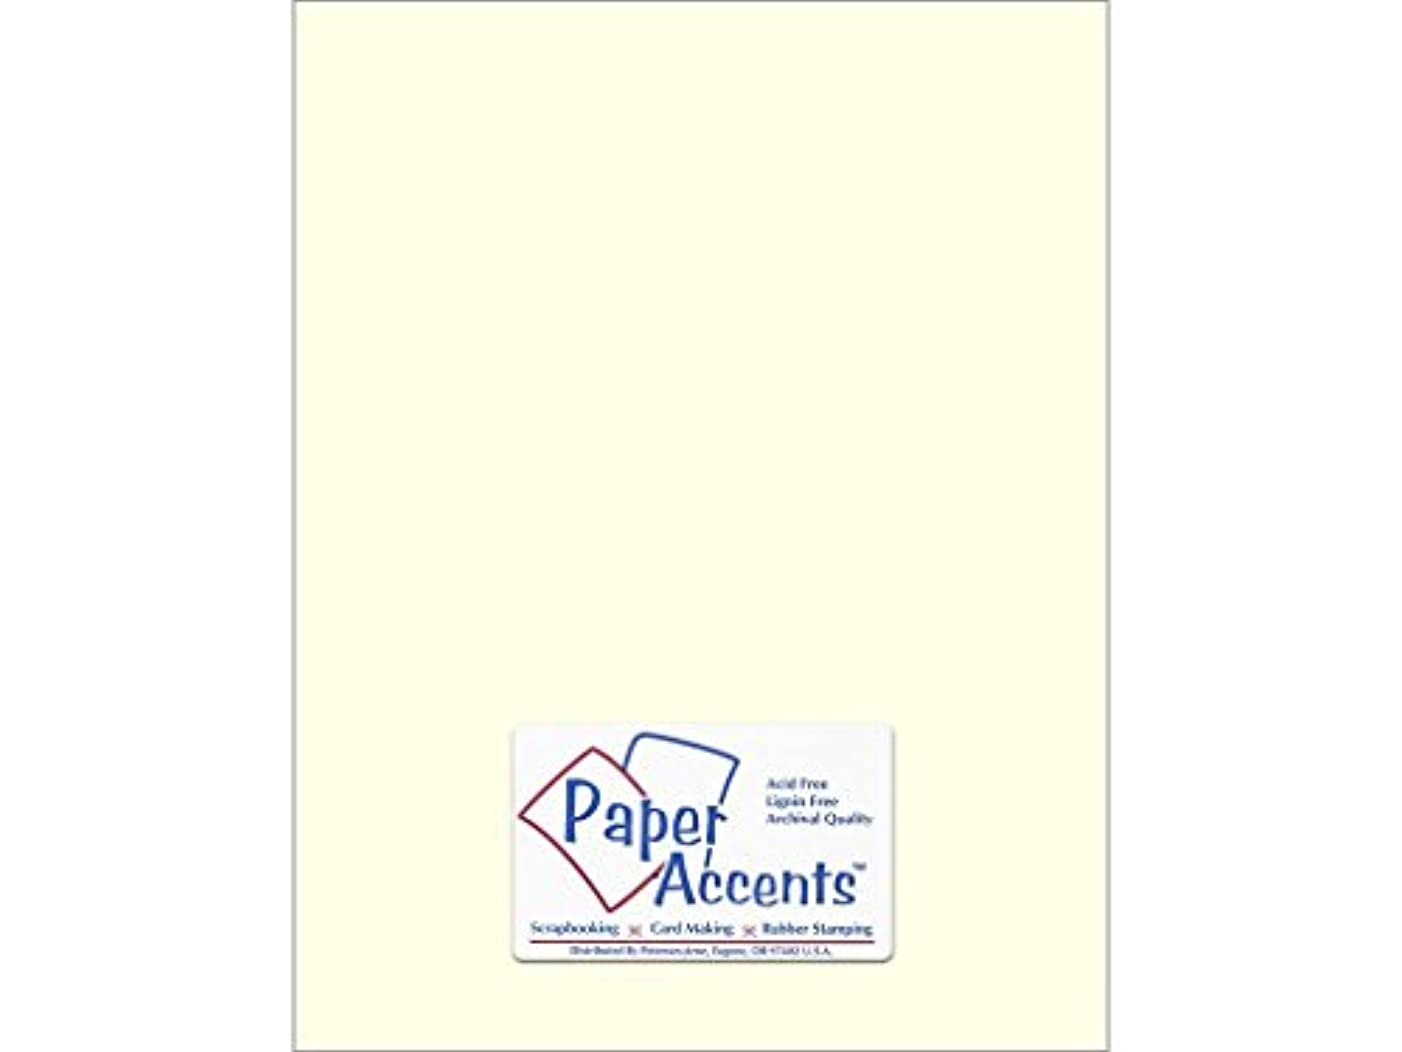 Accent Design Paper Accents Cdstk Smooth 8.5x11 80# Eggshell